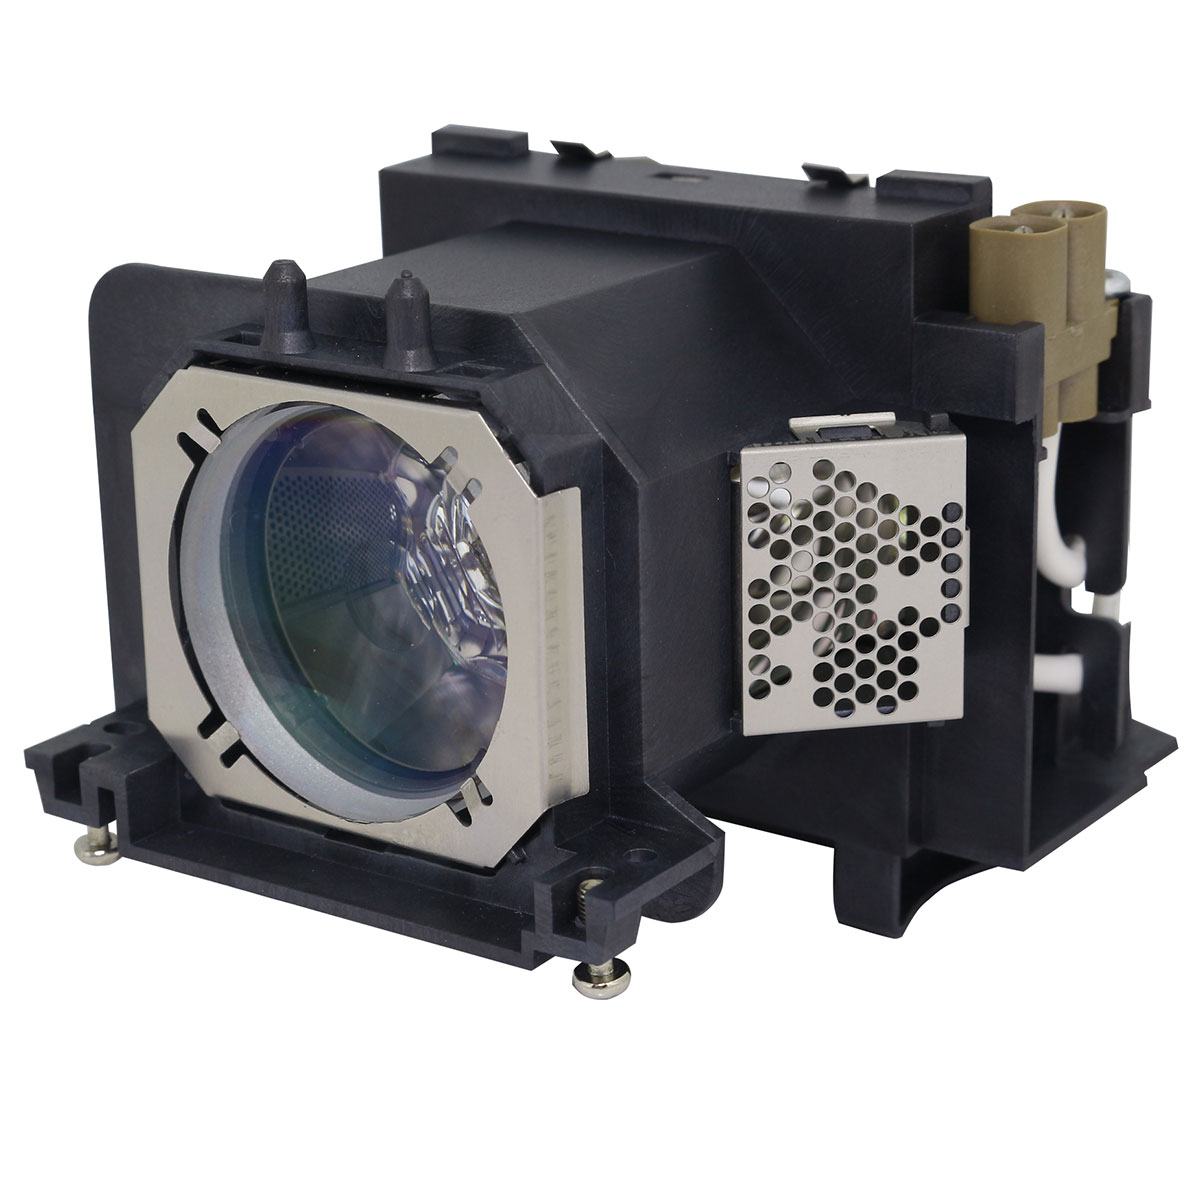 Original Philips Projector Lamp Replacement for Panasonic PT-VZ575N (Bulb Only) - image 5 of 5